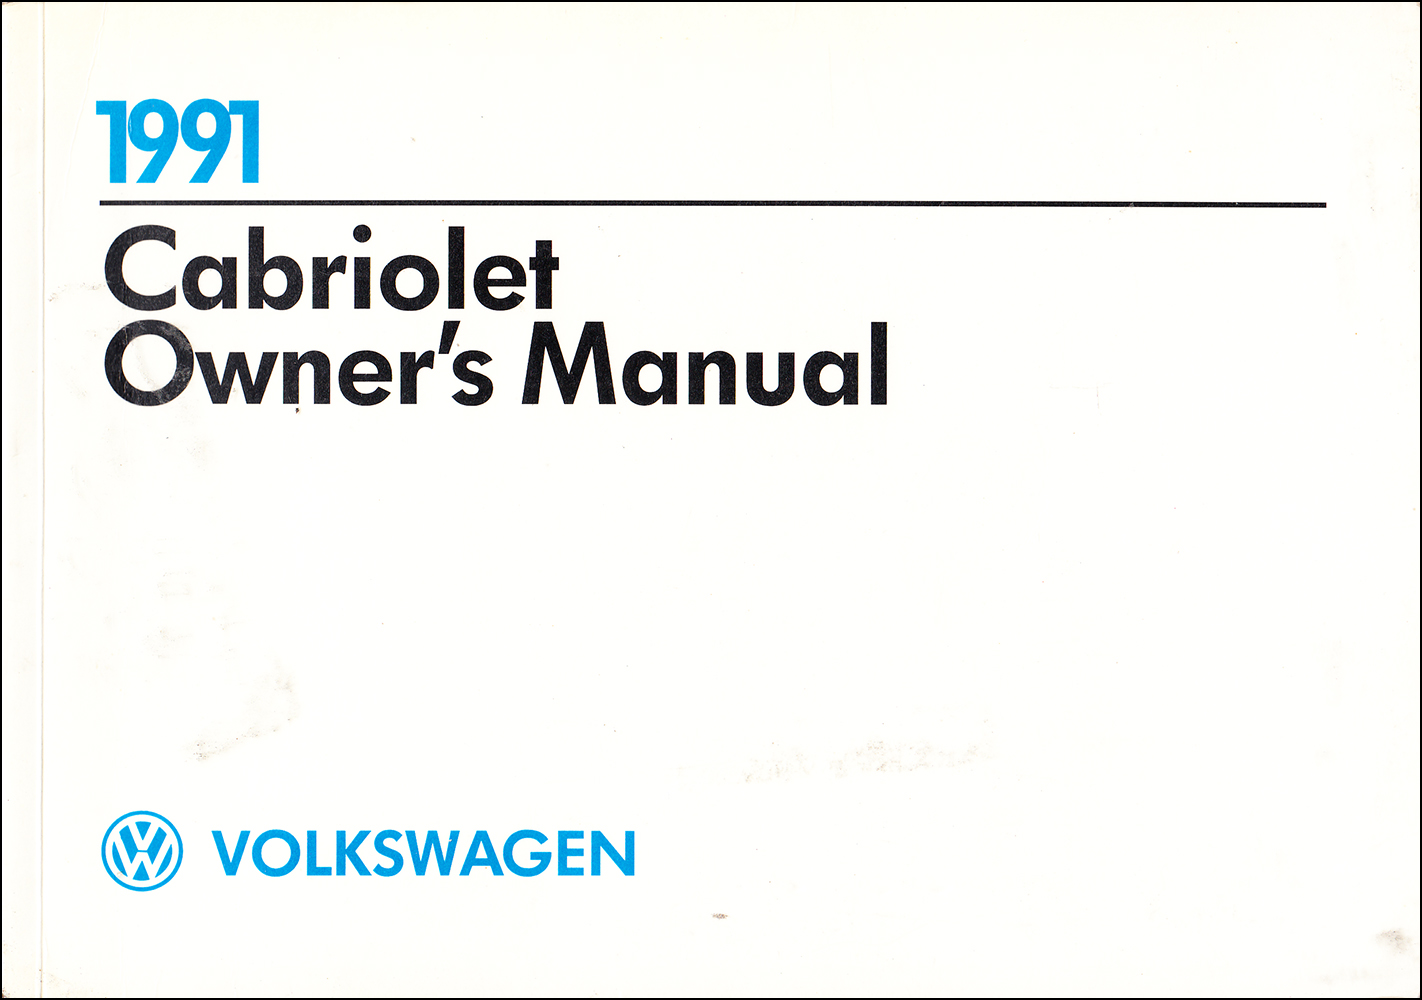 1991 Volkswagen Cabriolet Owner's Manual Original